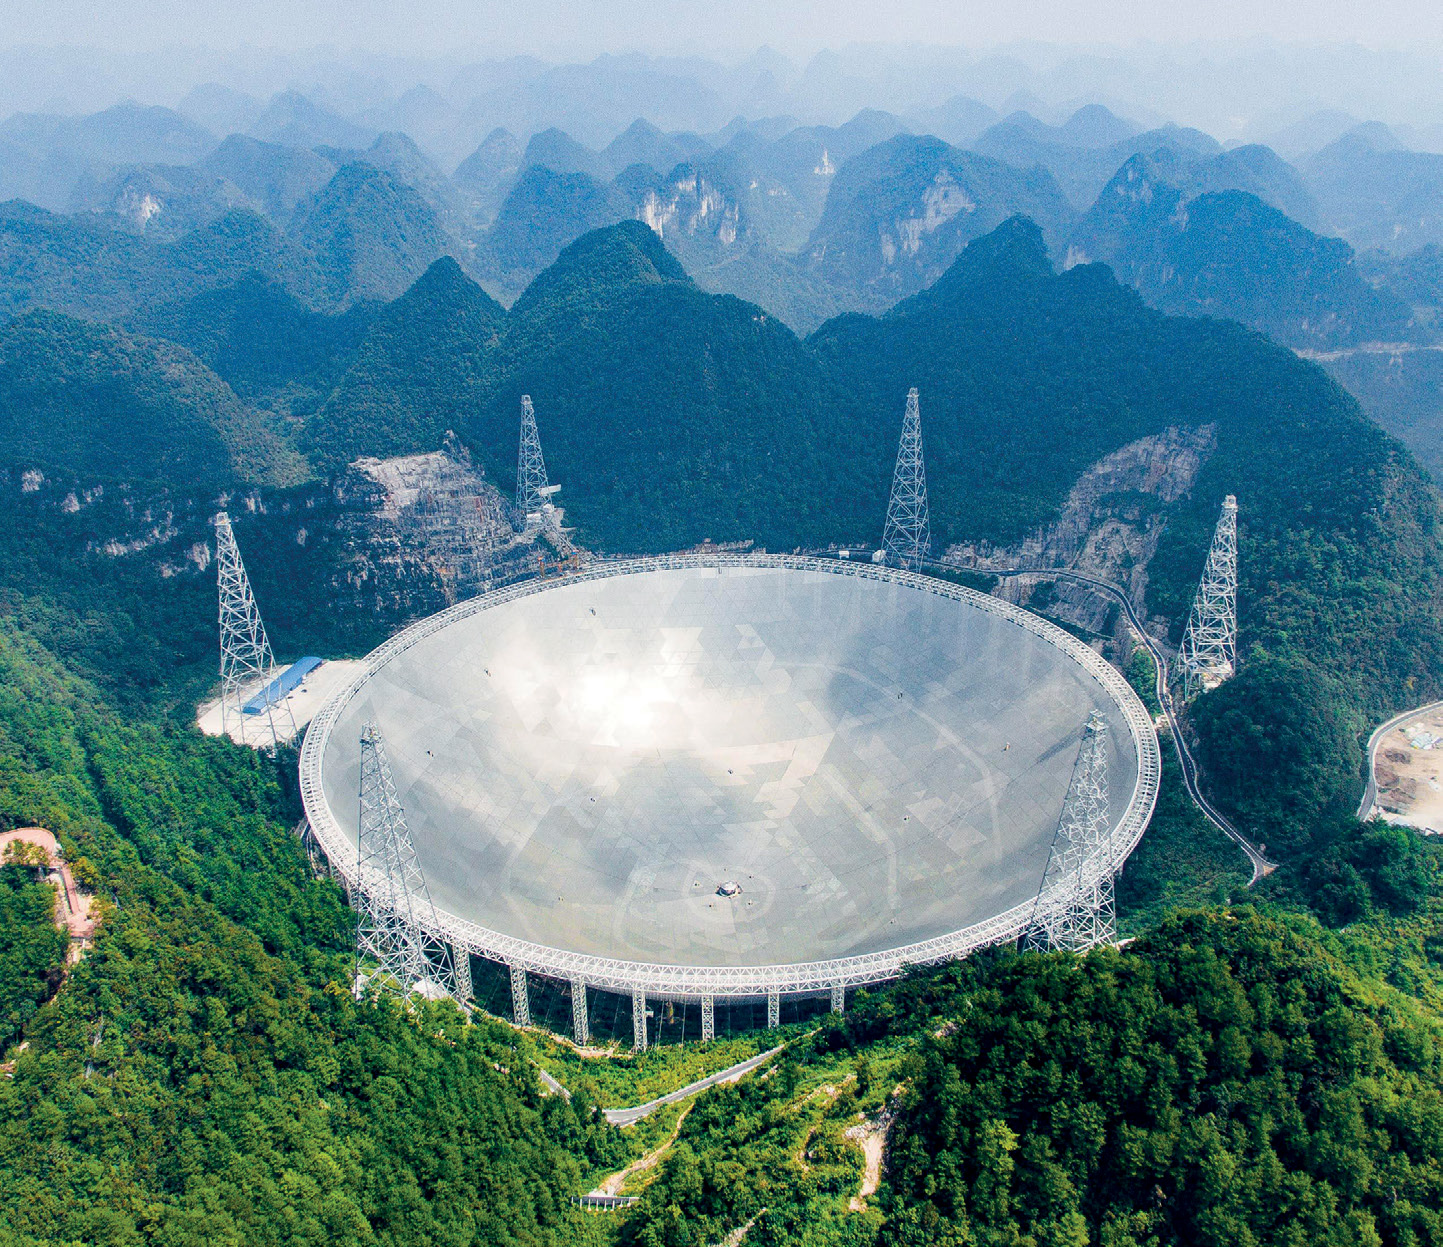 Since the 2008 economic crisis, China has invested heavily in infrastructure. The largest radio telescope in the world, for observing outer space, was completed in 2016 in southwest China.